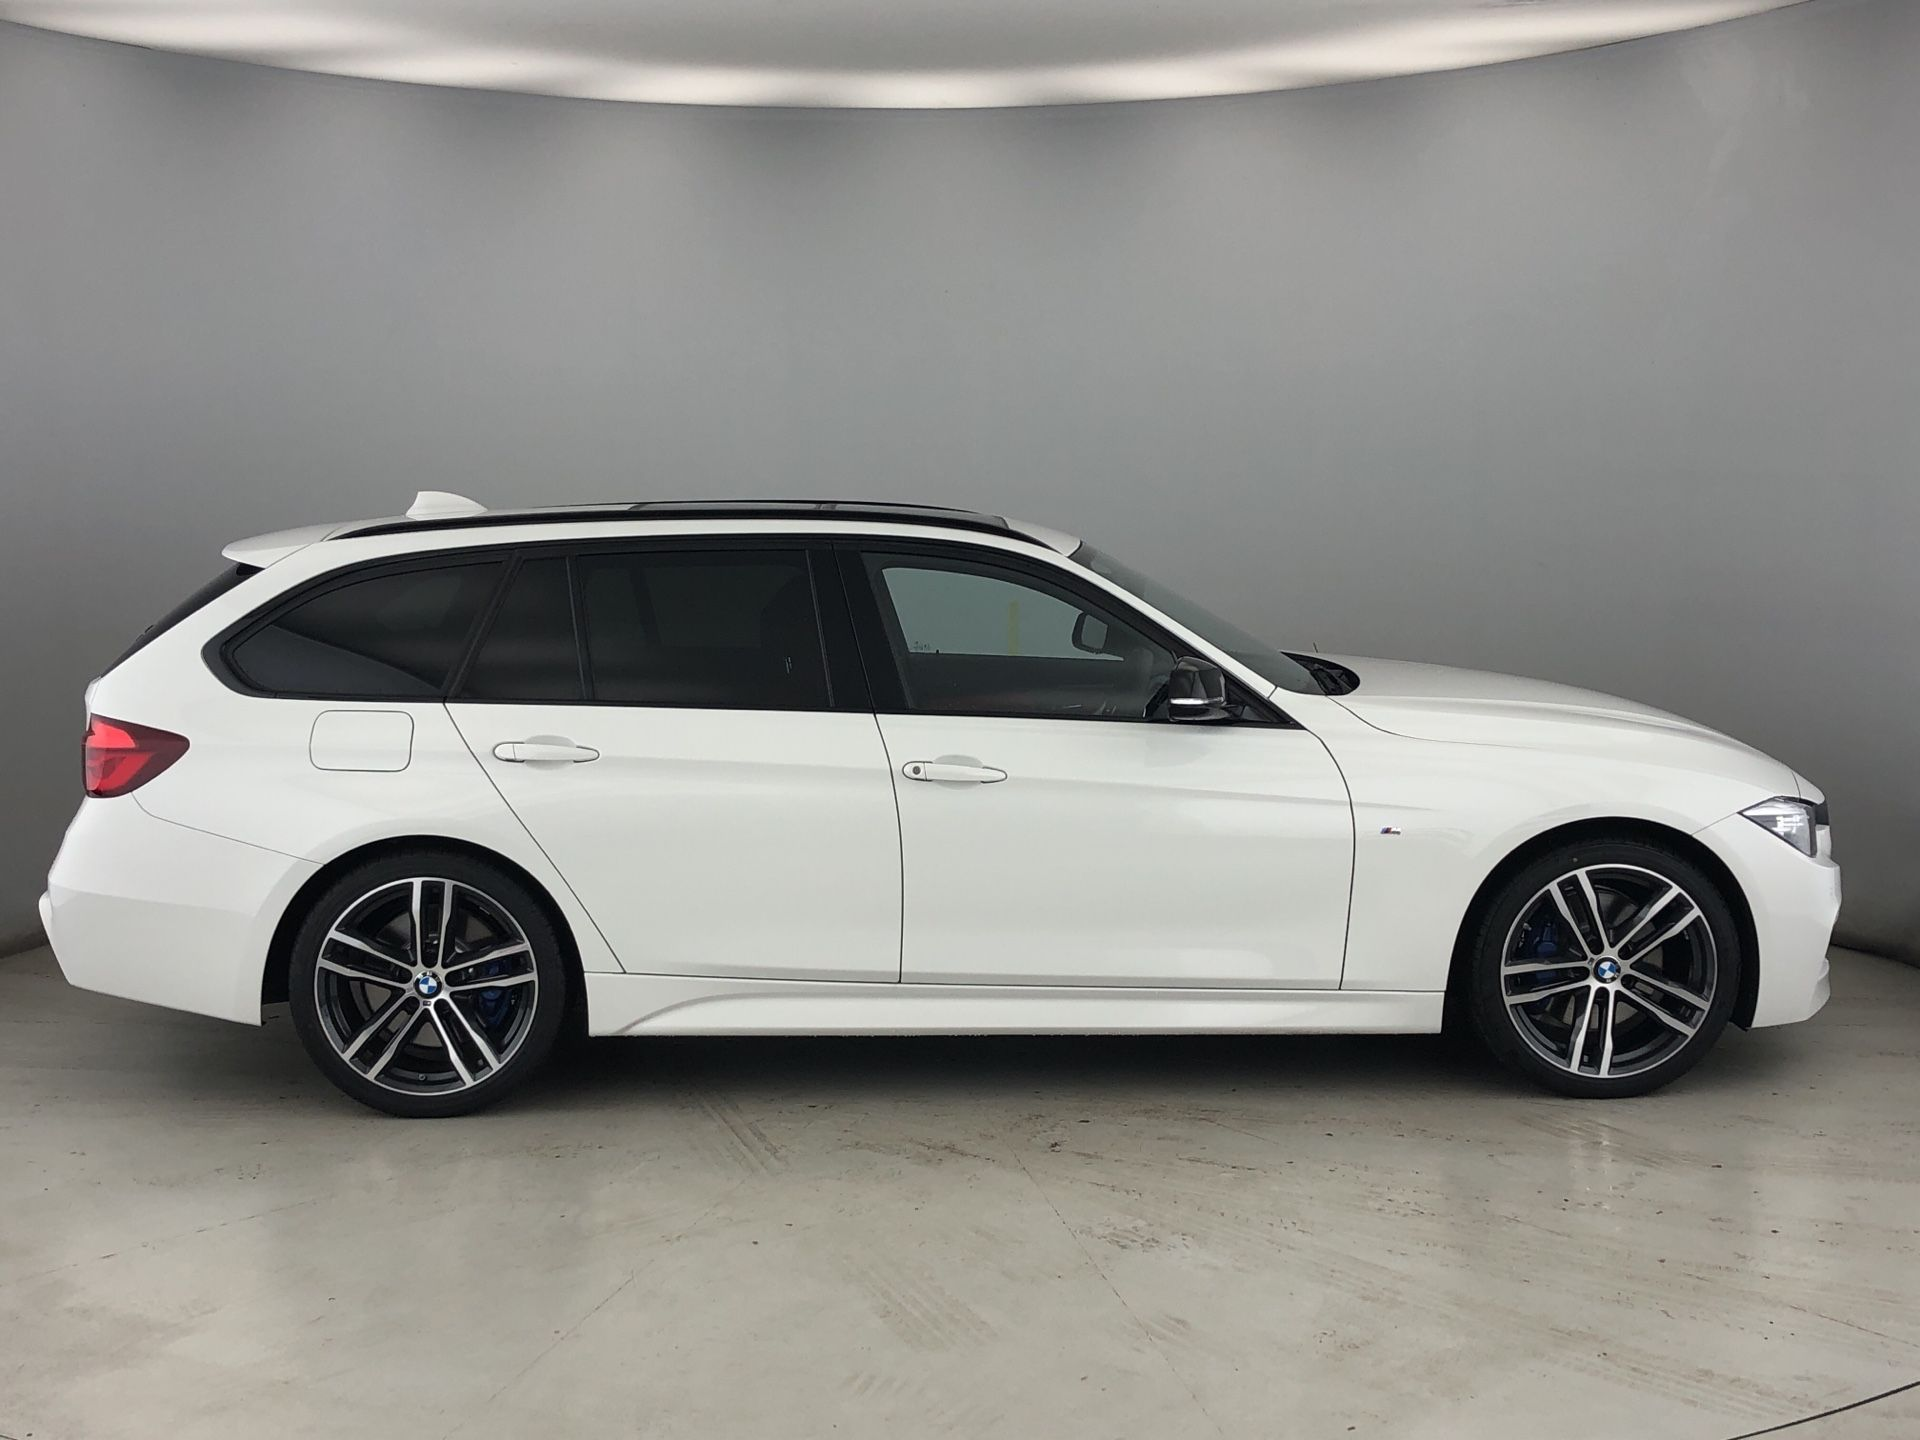 Image 3 - BMW 320d M Sport Shadow Edition Touring (YF19GDX)